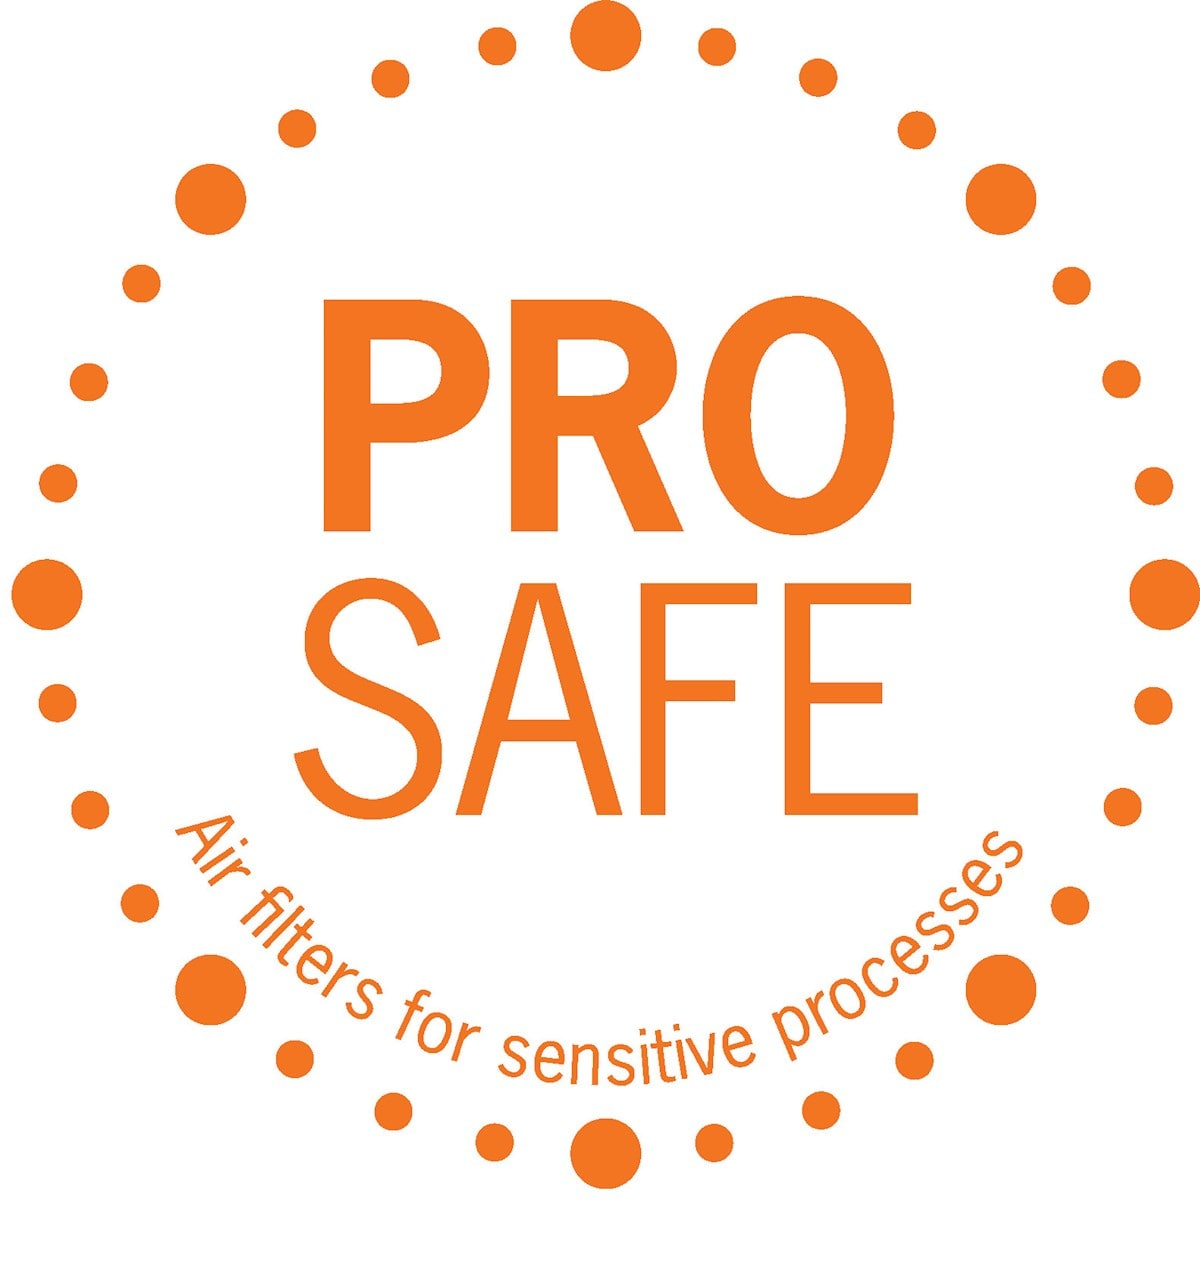 ProSafe logo no background